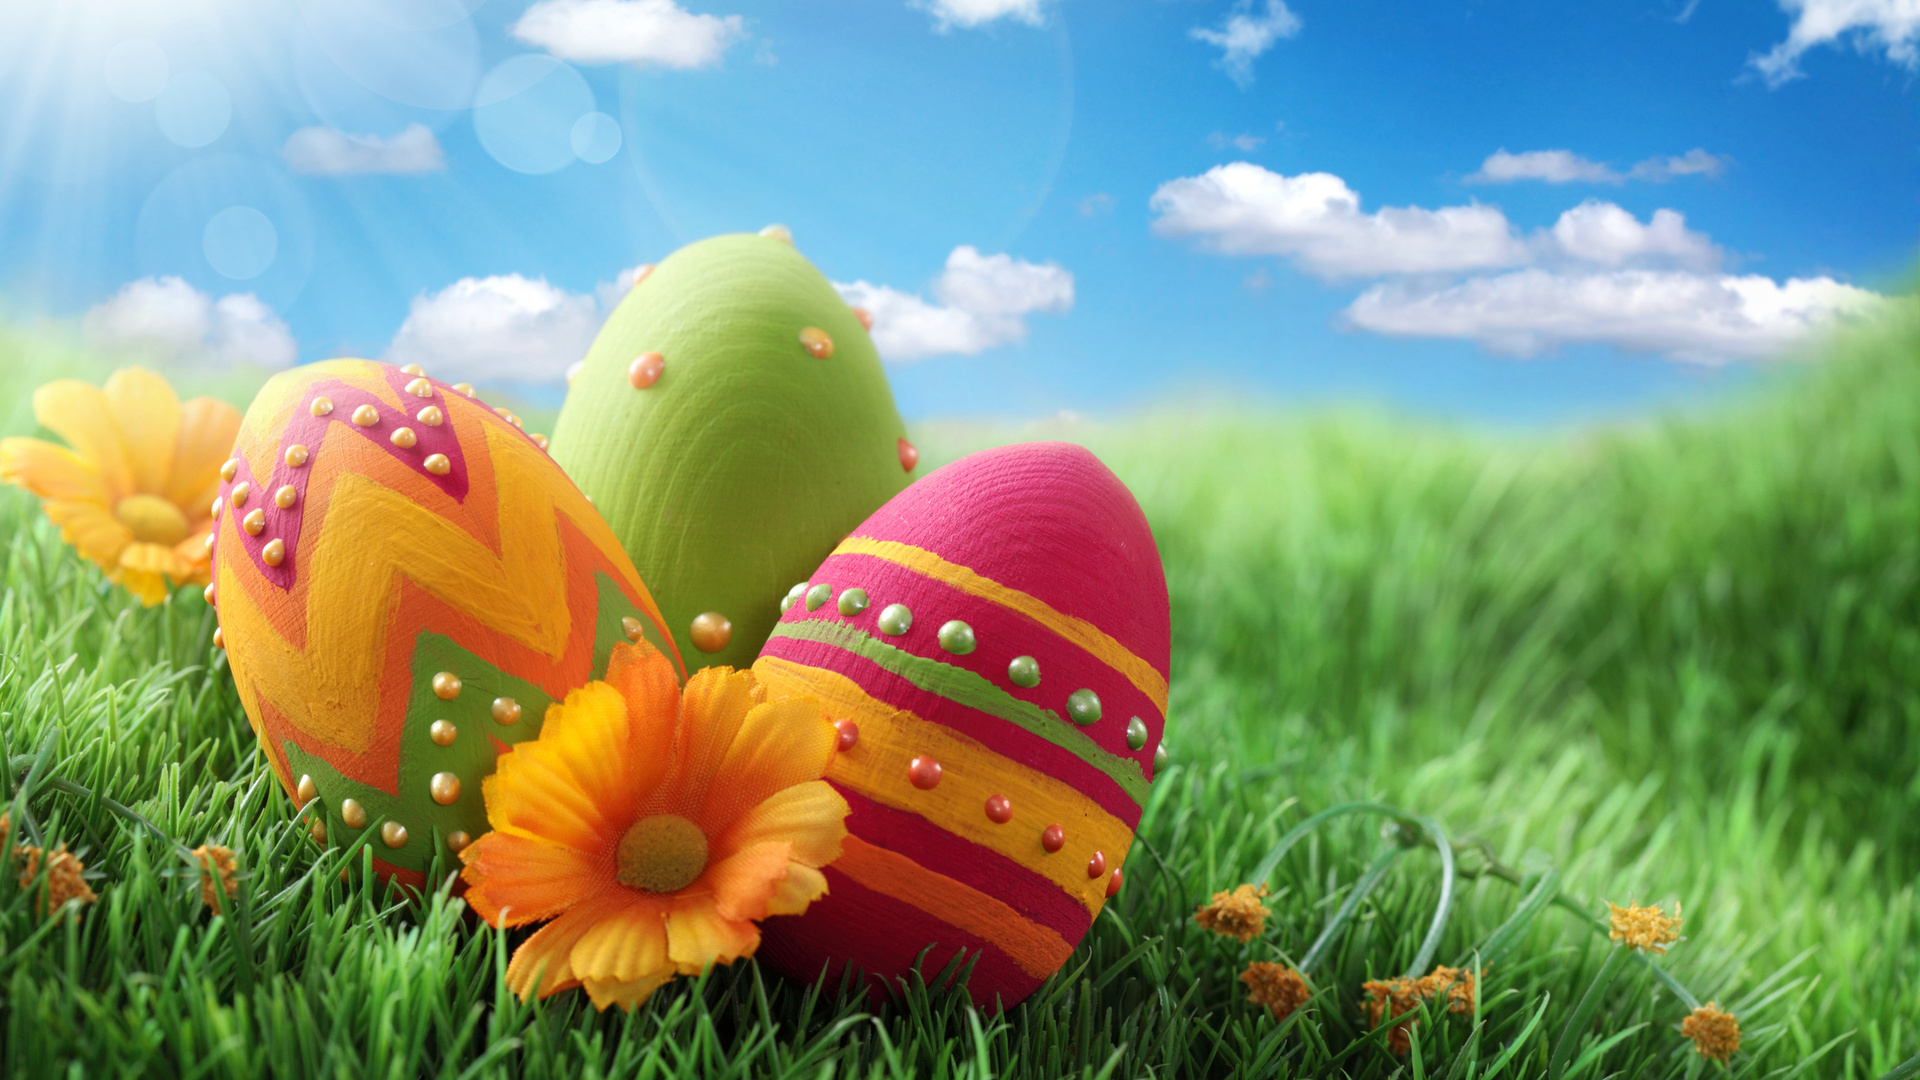 Easter Wallpaper 2019 Best Cool Funny